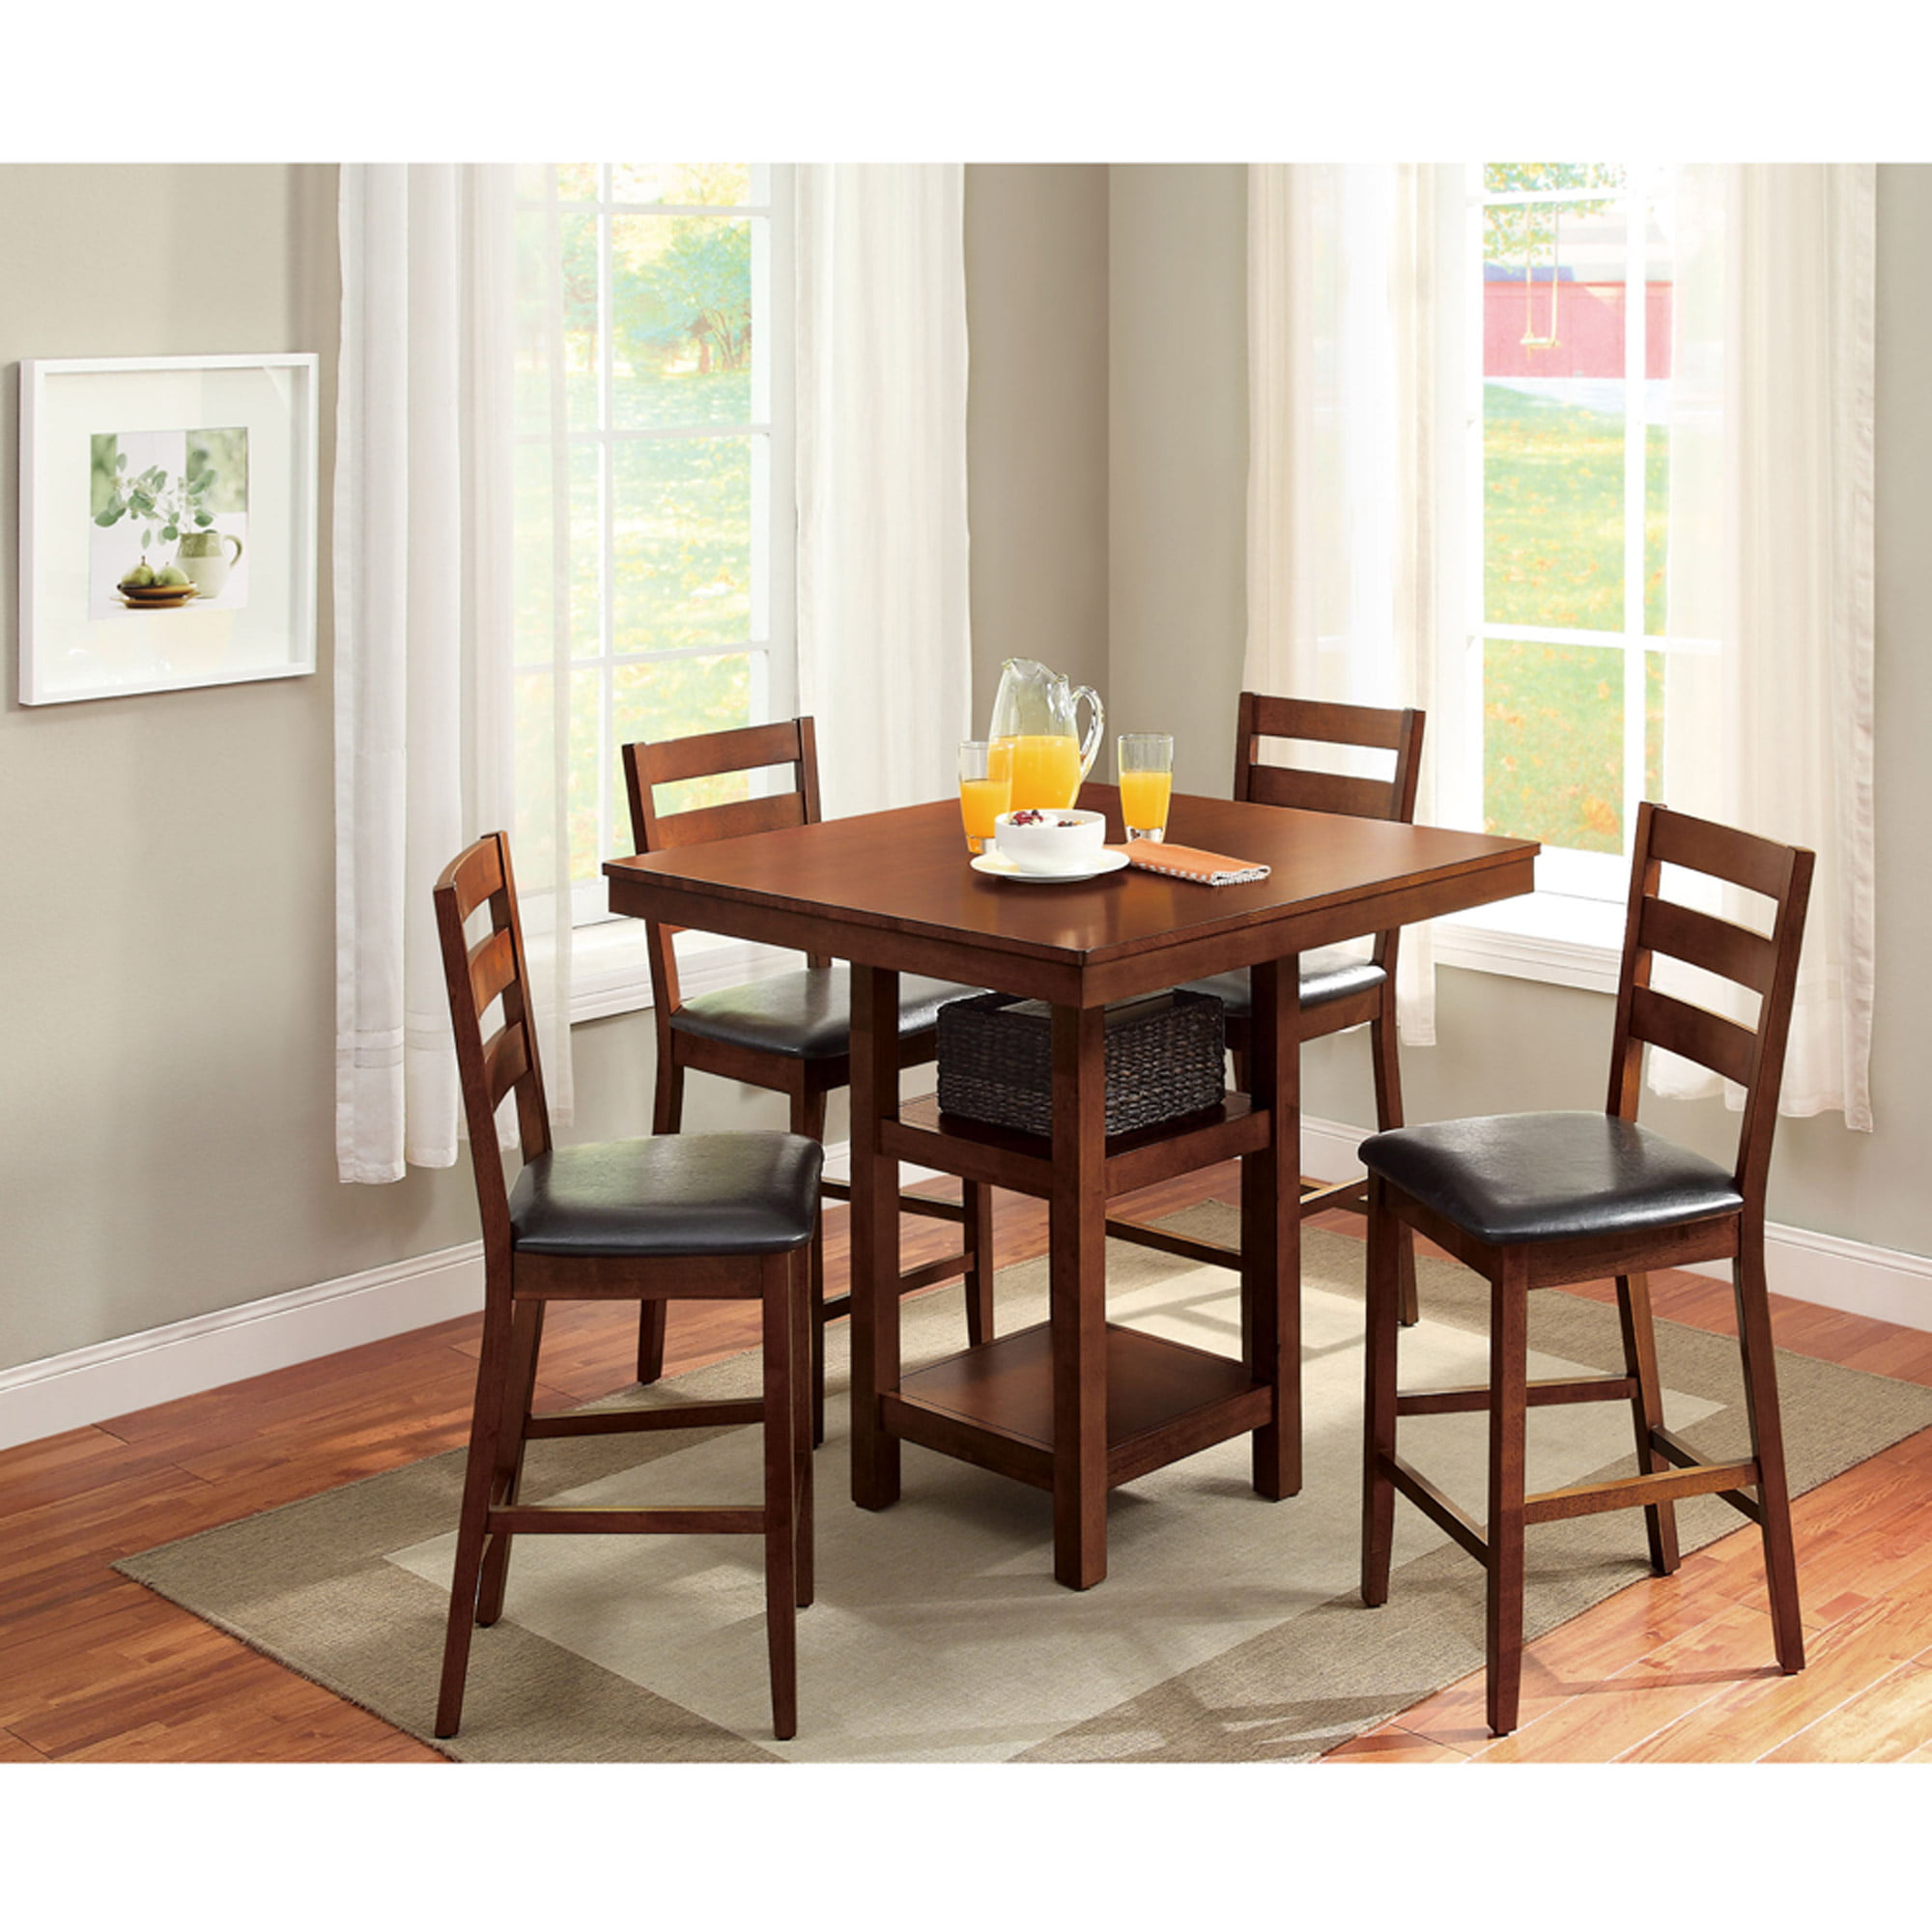 Costway 3 PC Pub Dining Set Table Chairs Counter Height Home Breakfast  W/Storage Shelves   Walmart.com